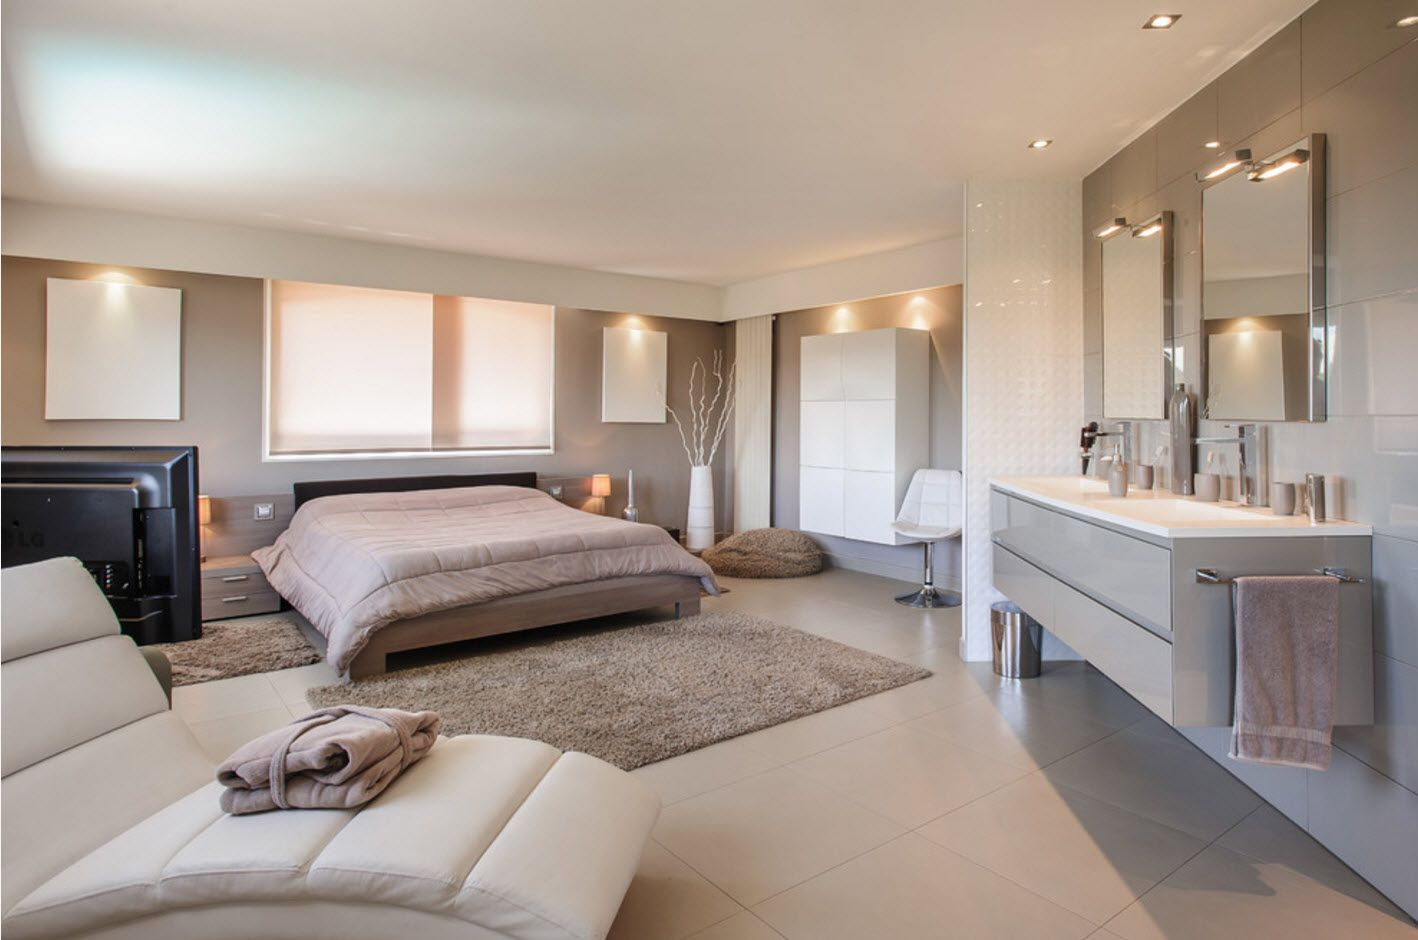 Large private house bedroom in pastel color gamma